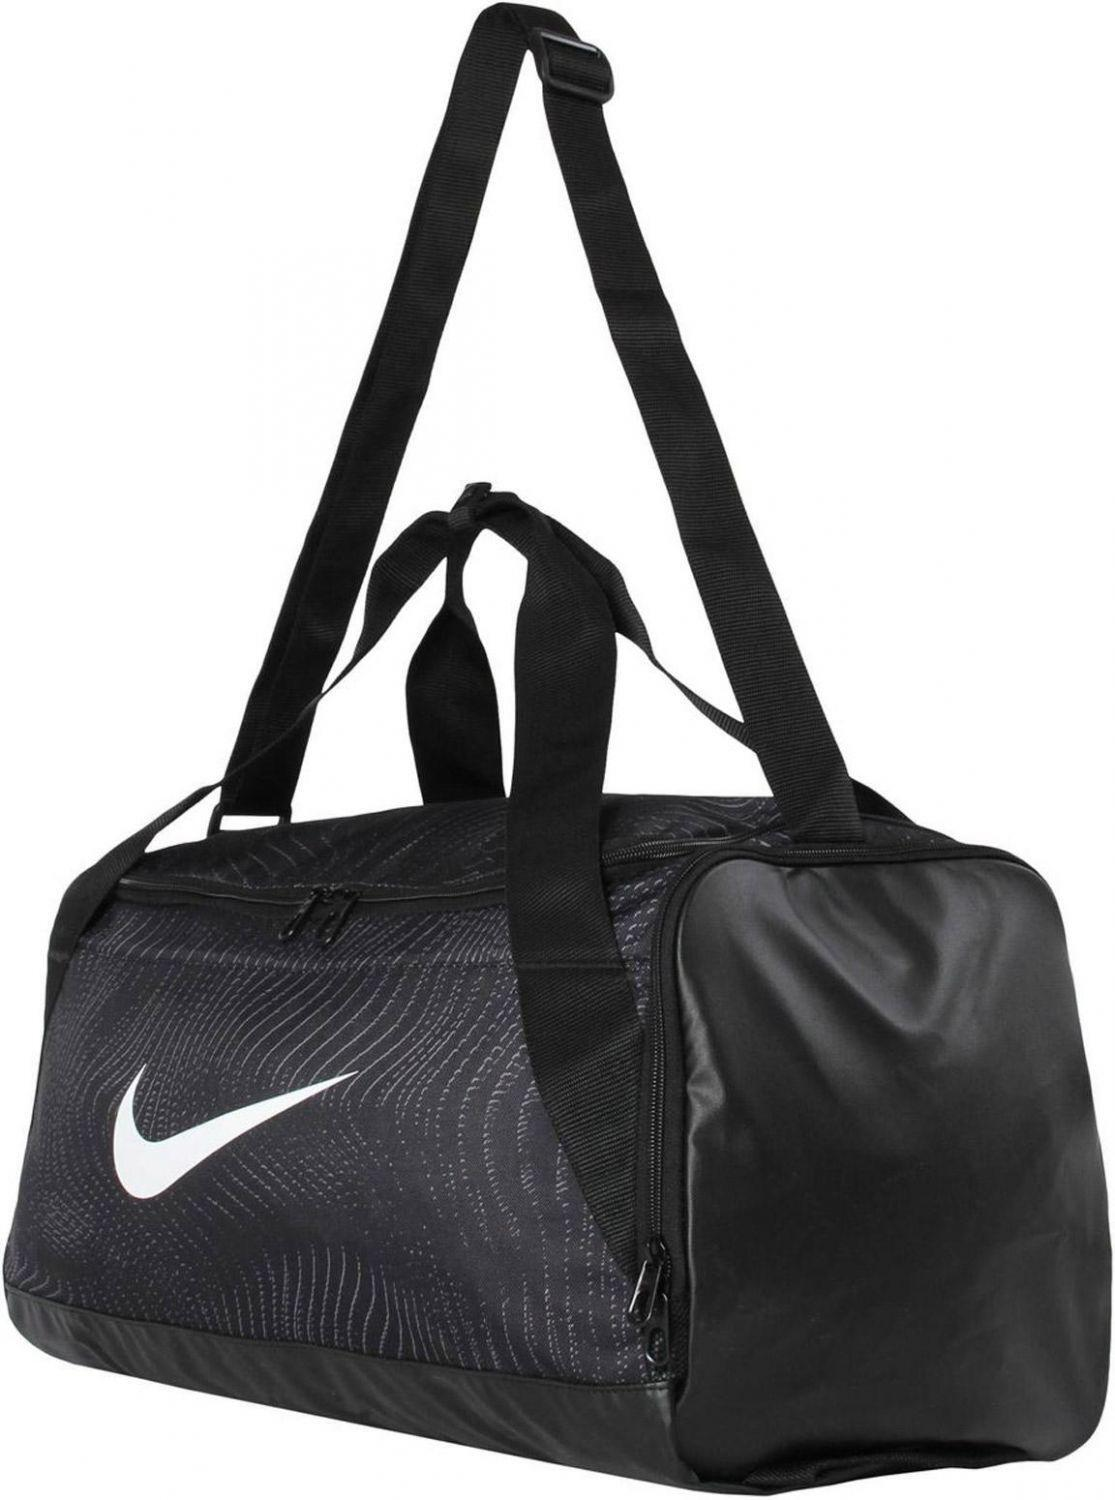 nike-brasilia-trainingstasche-farbe-013-black-black-white-